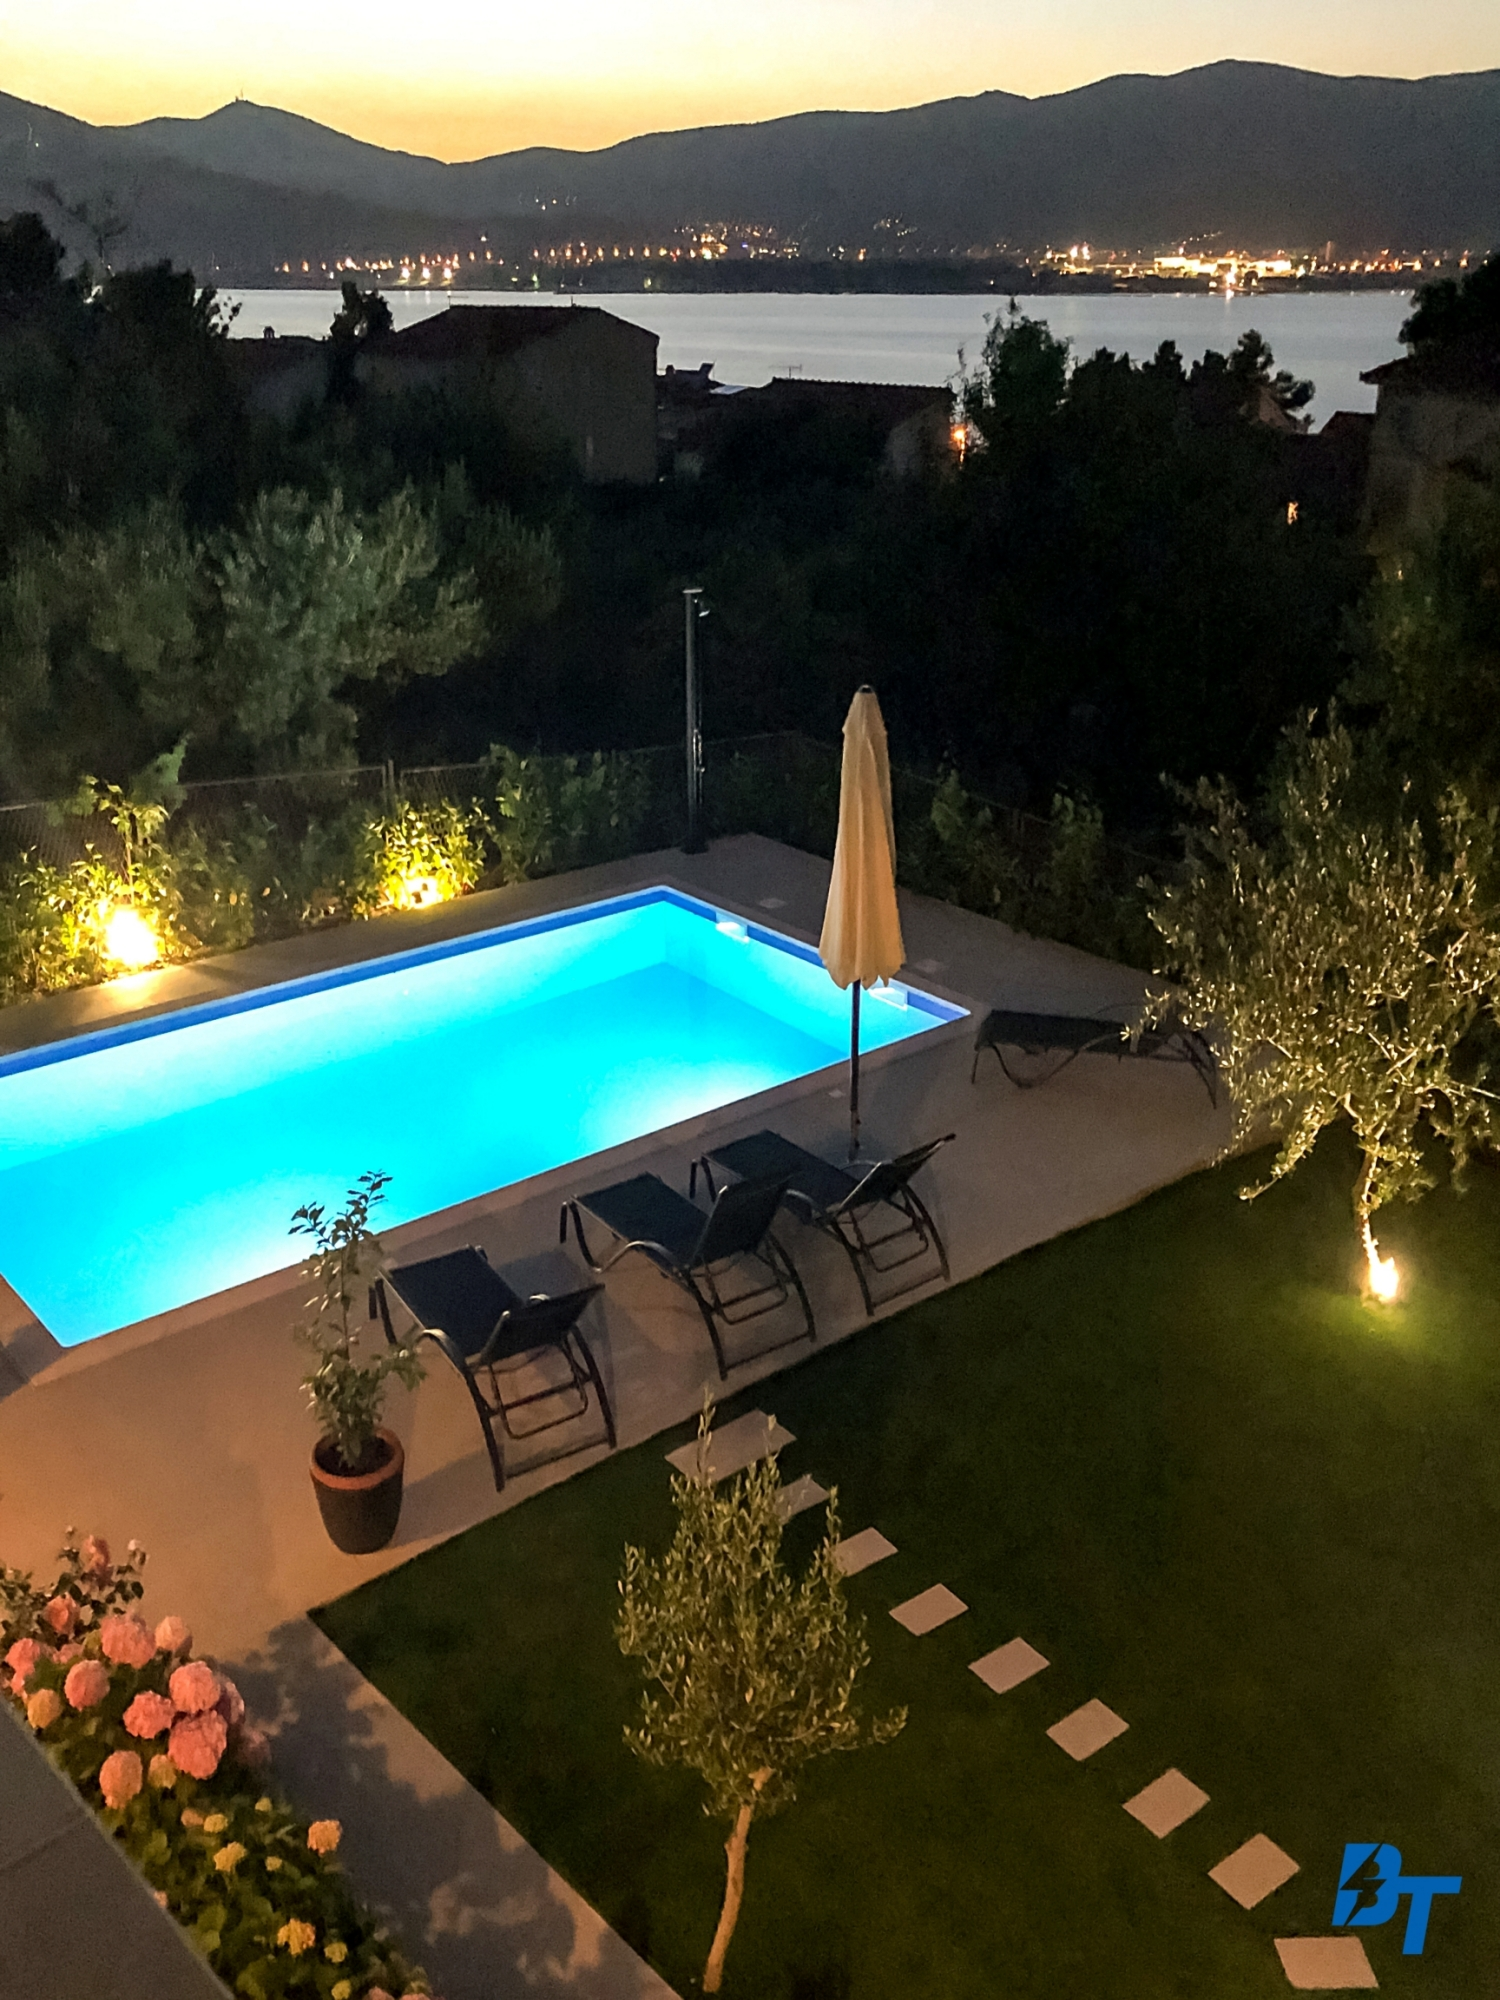 Enjoy Watching the View of the Pool and Sea in the Evening